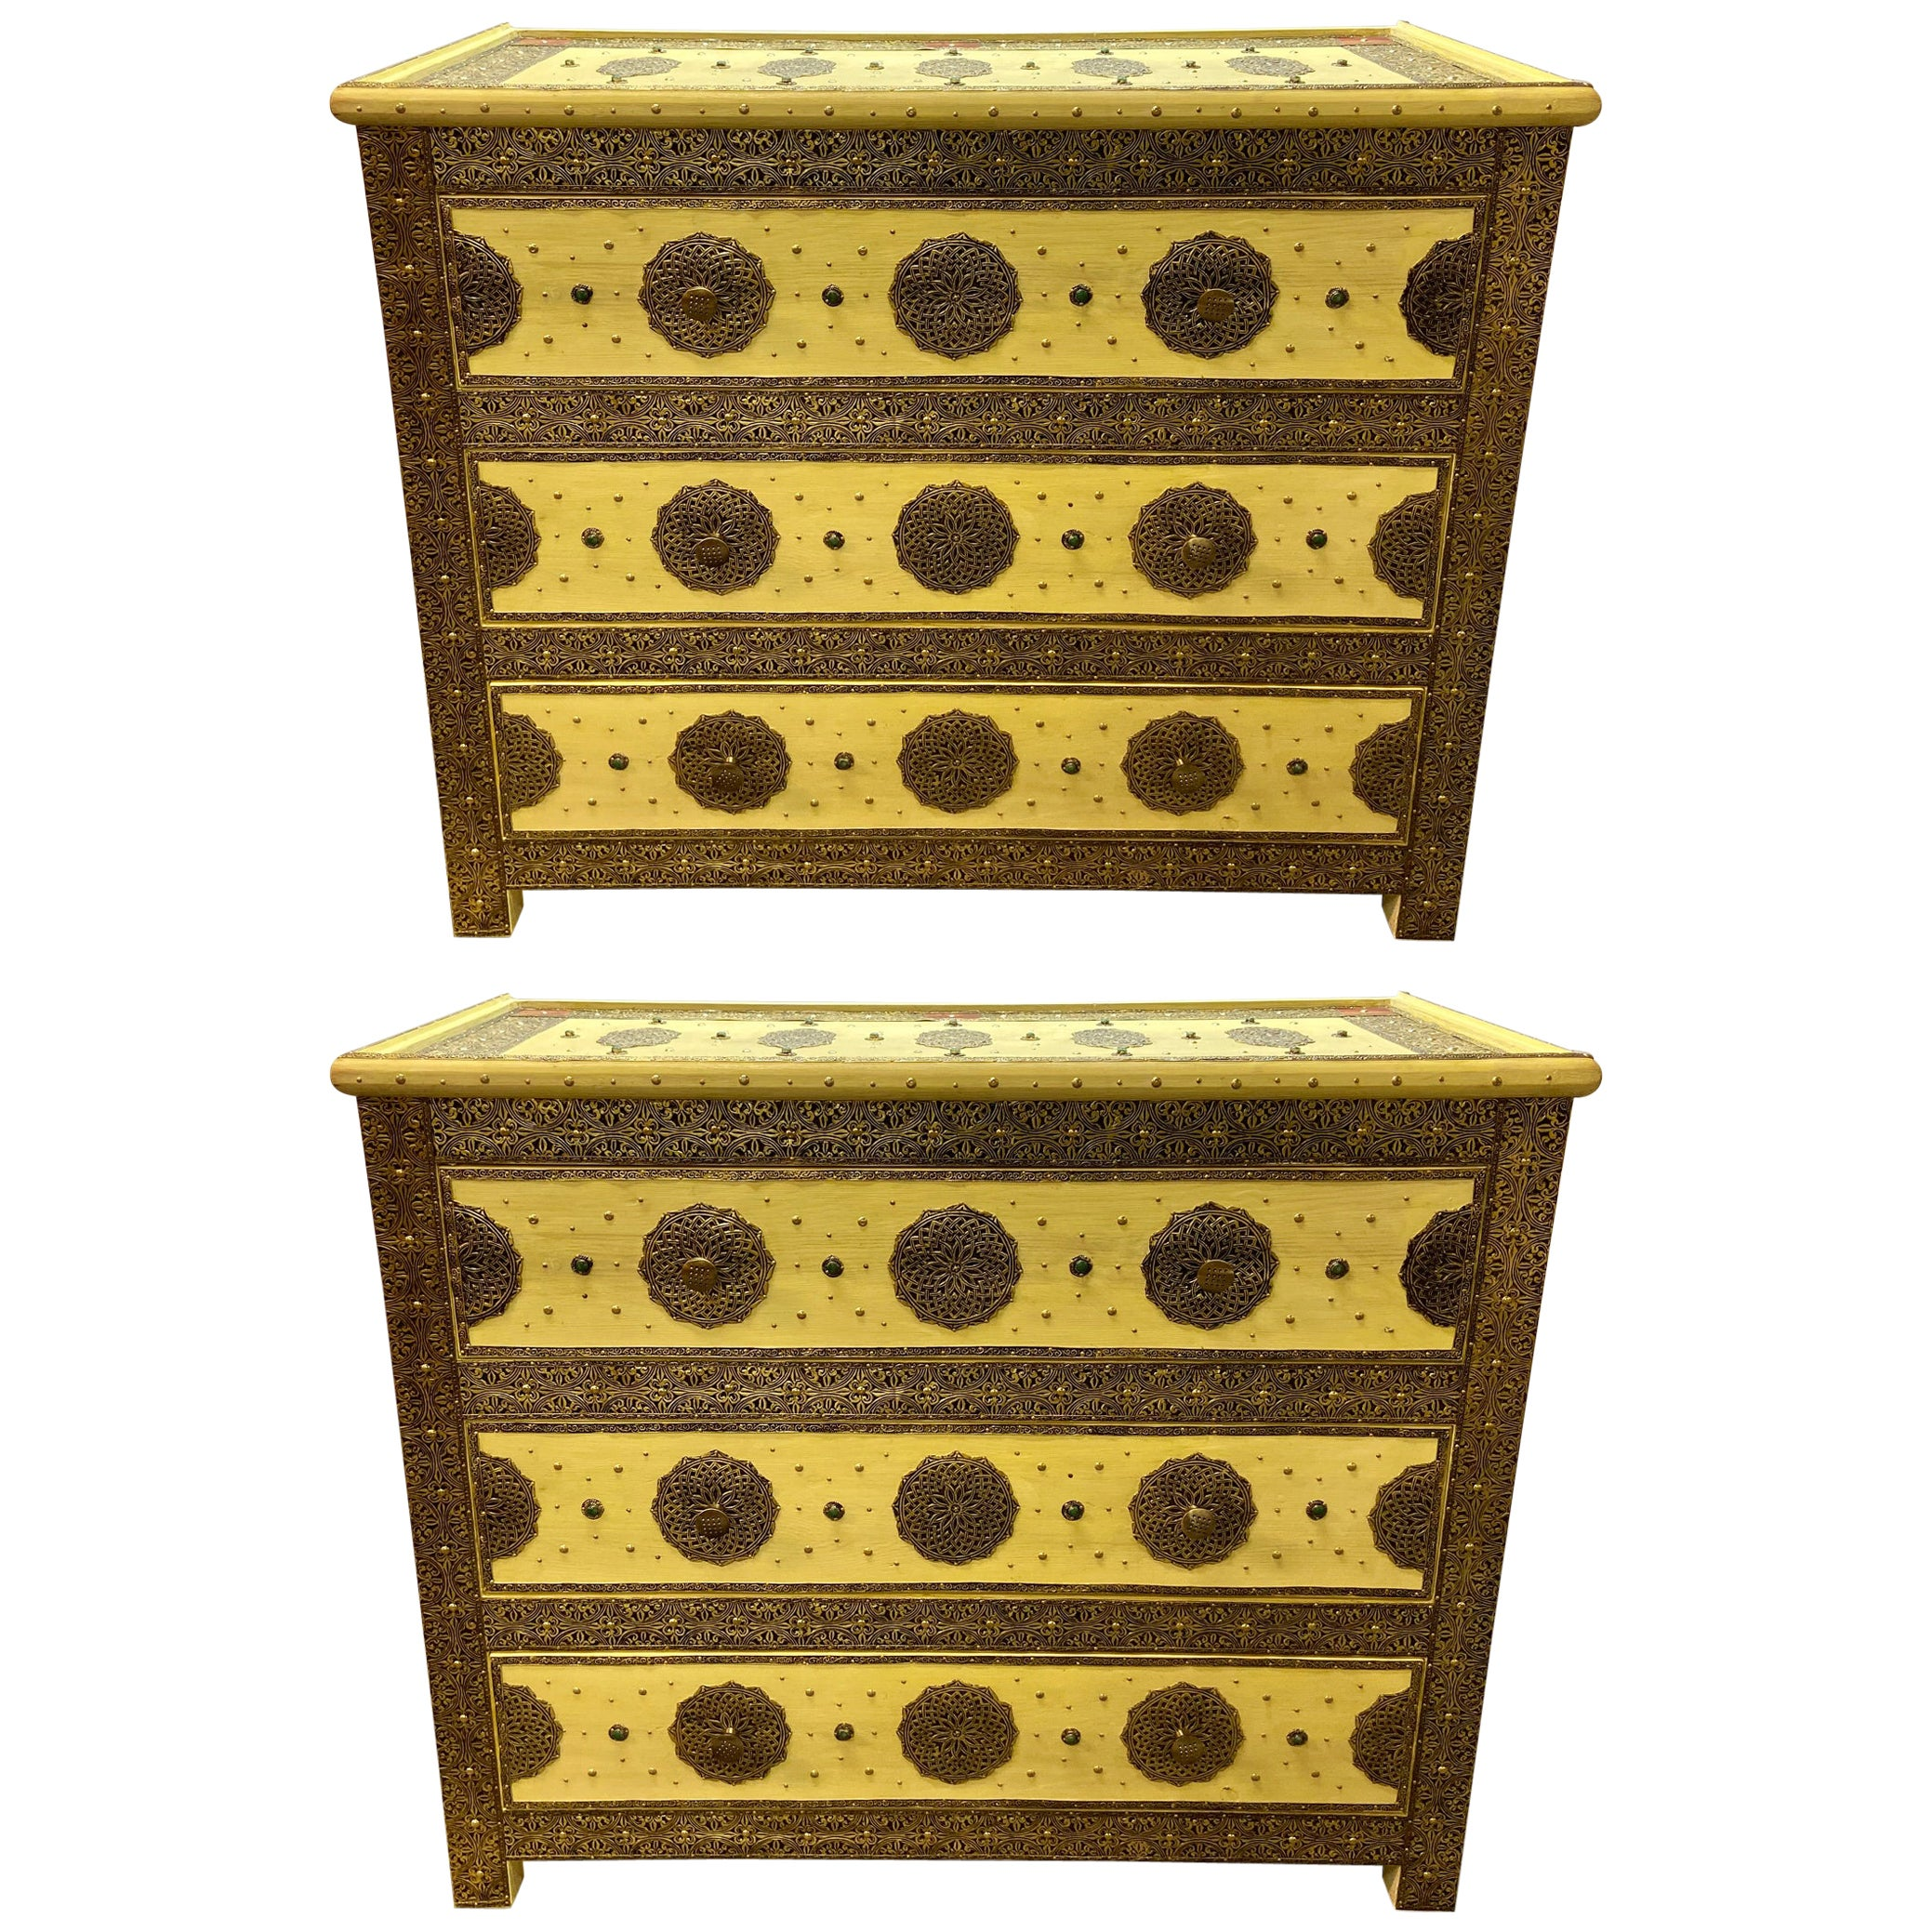 Three-Drawer Commodes, Chests or Nightstands in Hollywood Regency Style, a Pair